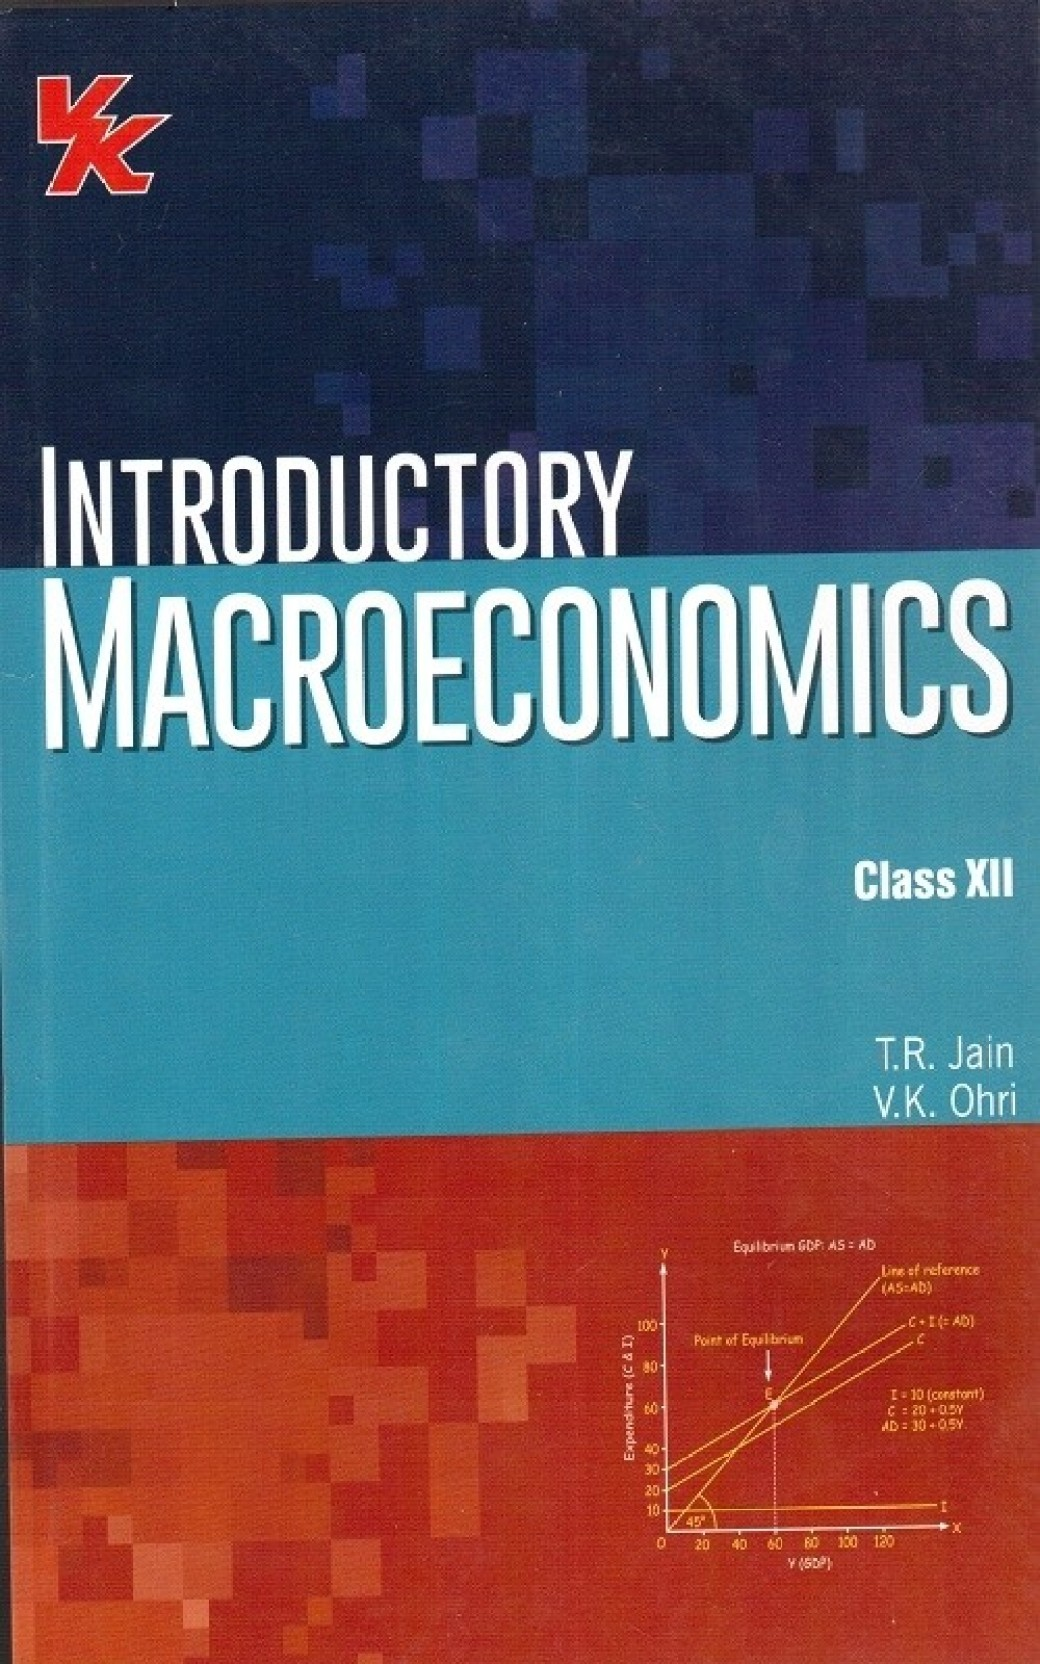 introductory macroeconomics An introduction to macroeconomic analysis of the economy as a whole, including the determination of national income, the price level, interest rates, the money supply, and the balance of payments the principles of monetary and fiscal policy are also examined econ 111/30 and econ 112/30 are together equivalent to.